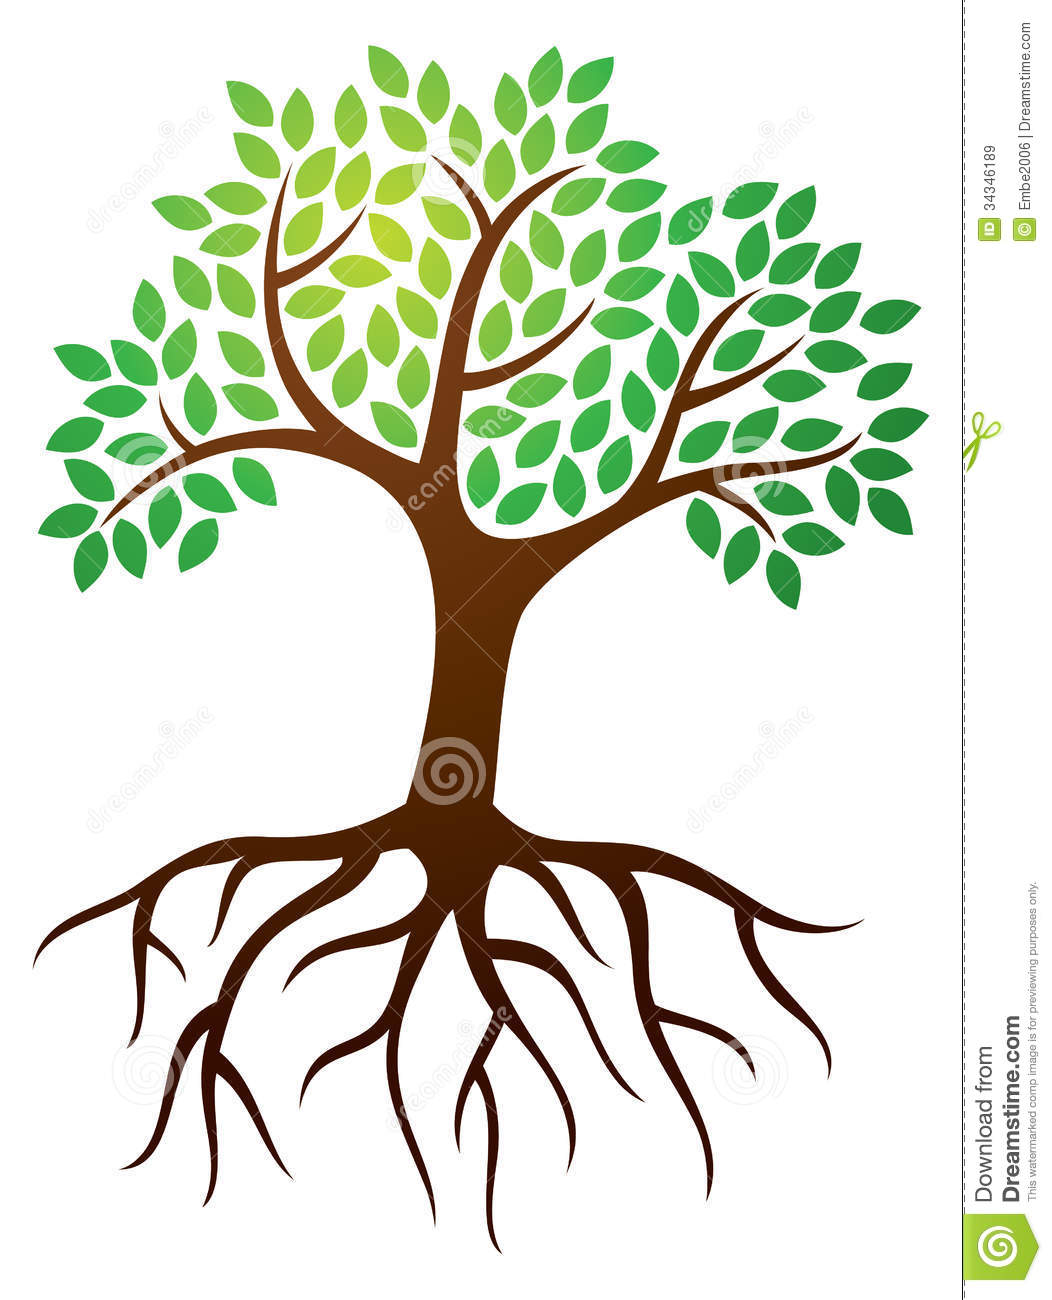 Roots clipart flower bud Trees Clipart With  Roots